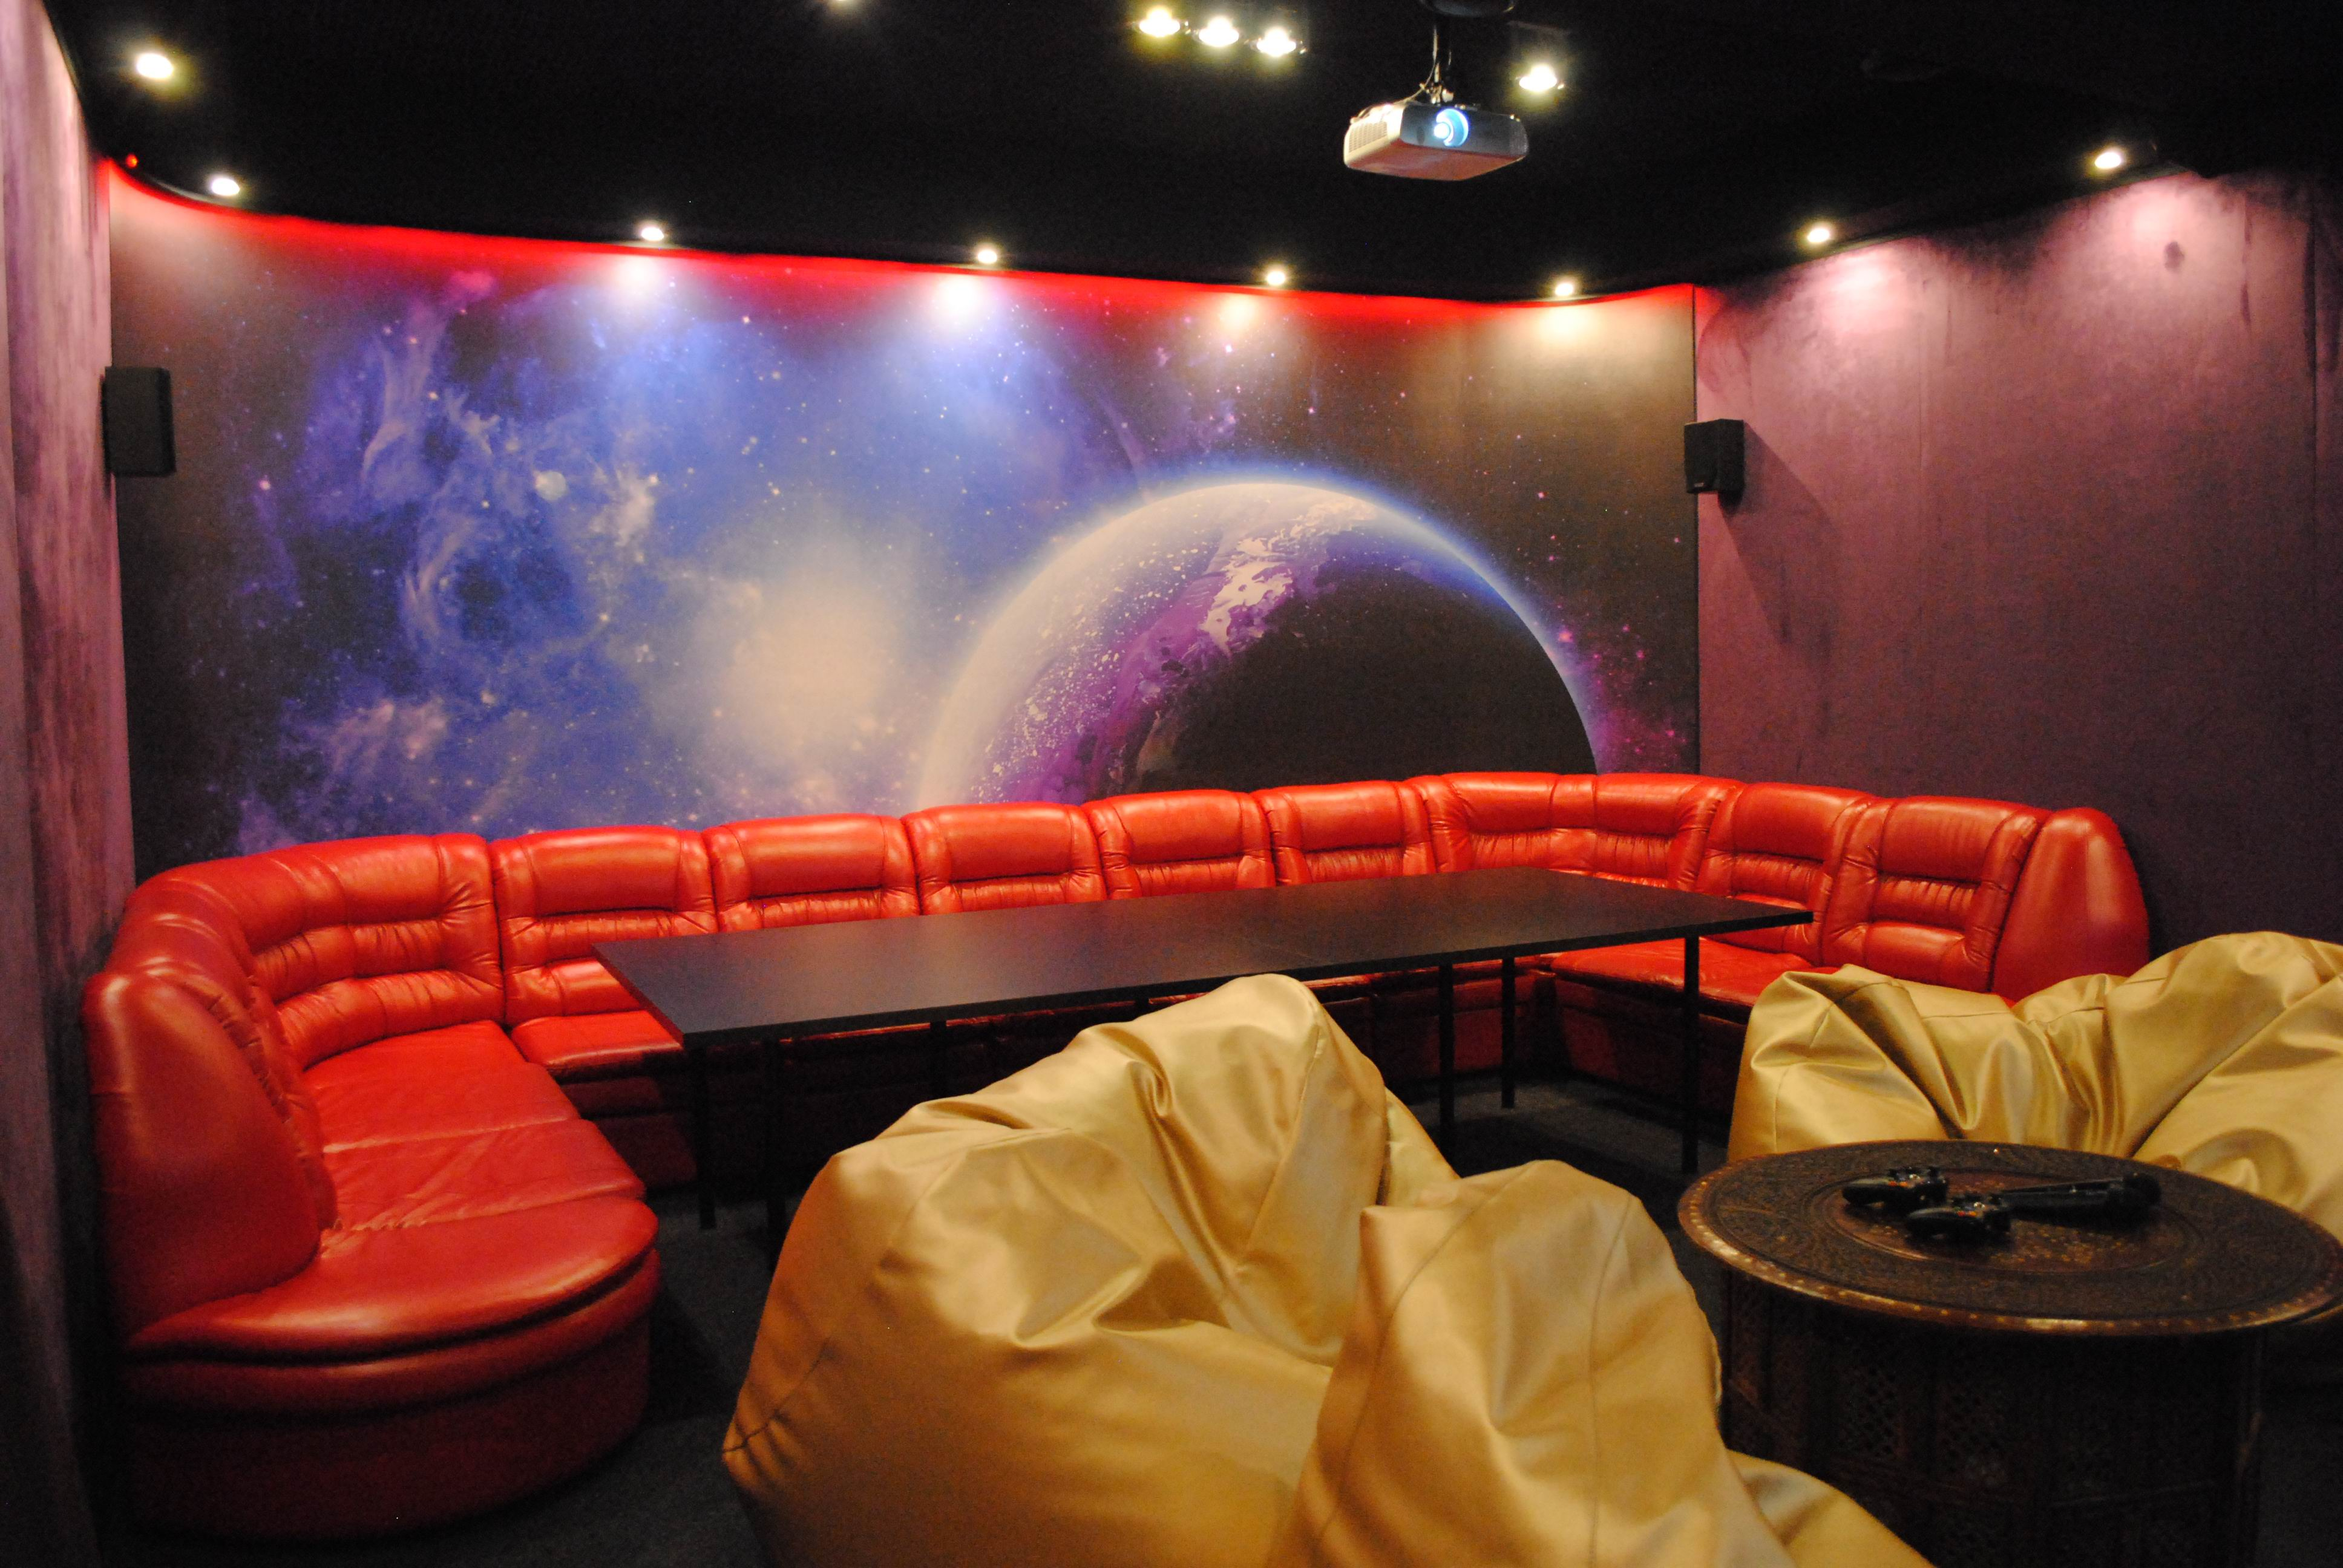 Кино-кафе «Lounge 3D cinema»